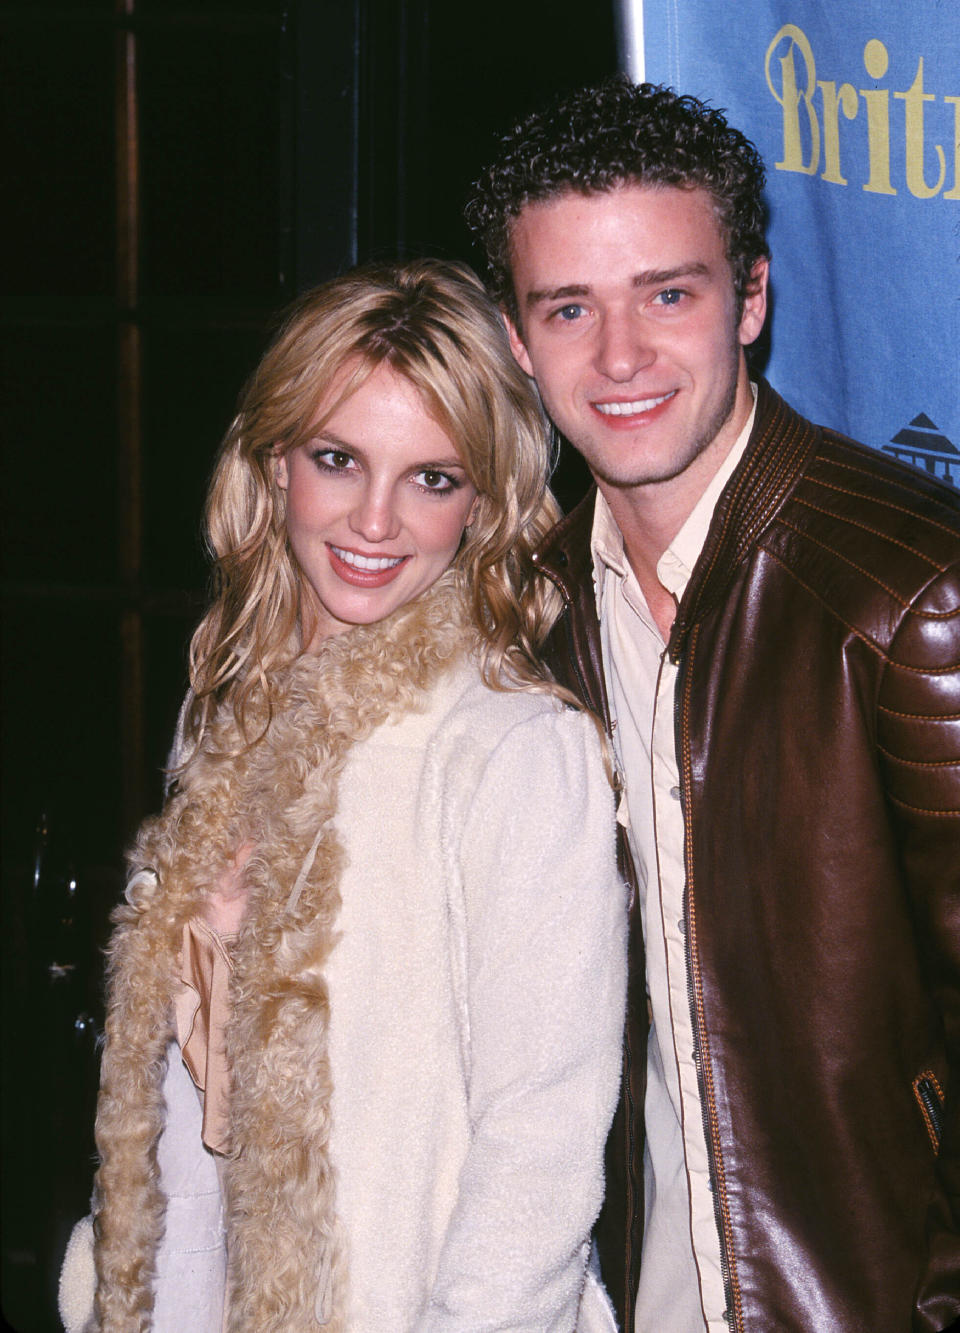 Photo by: Peter Kramer/STAR MAX/IPx 2020 2/12/21 Justin Timberlake apologizes to Britney Spears and Janet Jackson for